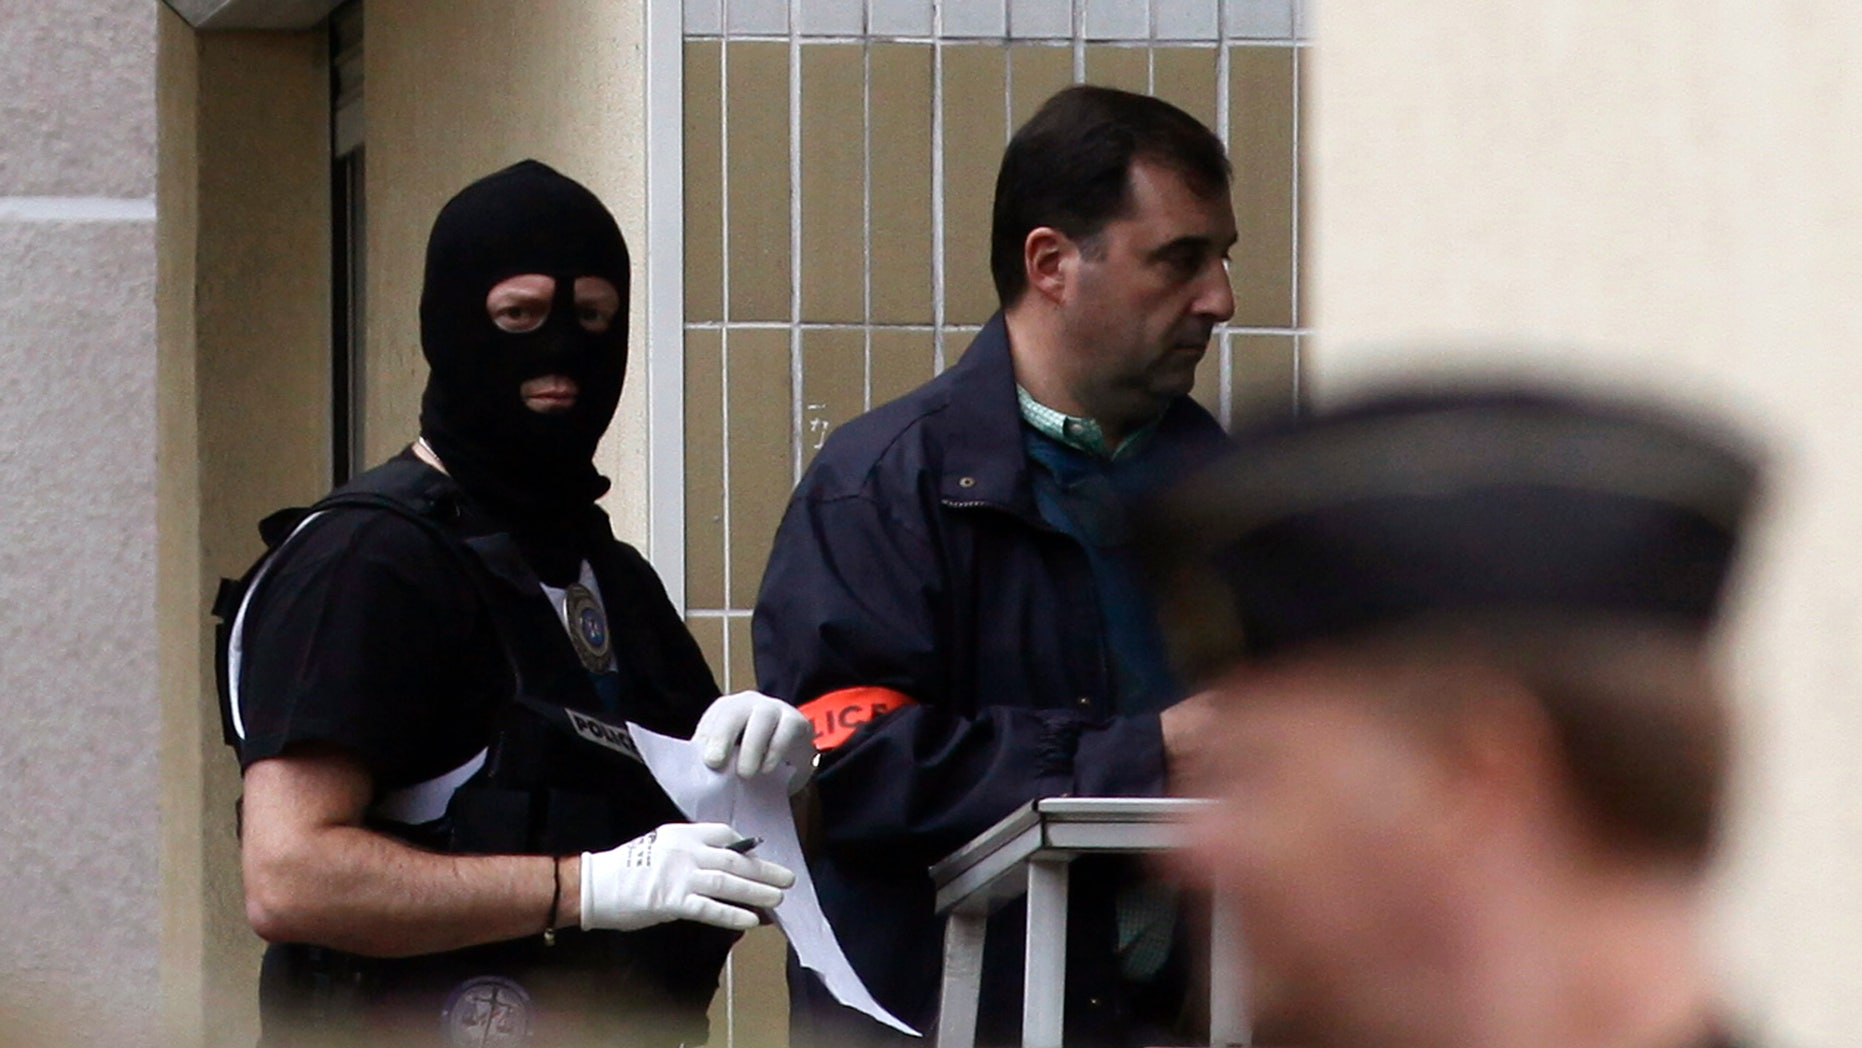 """French police officers stand outside a building where authorities discovered bomb-making material after the break up of a suspected terrorist cell last week, in Torcy, east of Paris, Wednesday, Oct. 10, 2012. French police discovered bomb-making materials in an underground parking lot near Paris as part of a probe of an """"extremely dangerous terrorist cell"""" linked to an attack on a kosher grocery, a state prosecutor said Wednesday. (AP Photo/Thibault Camus)"""